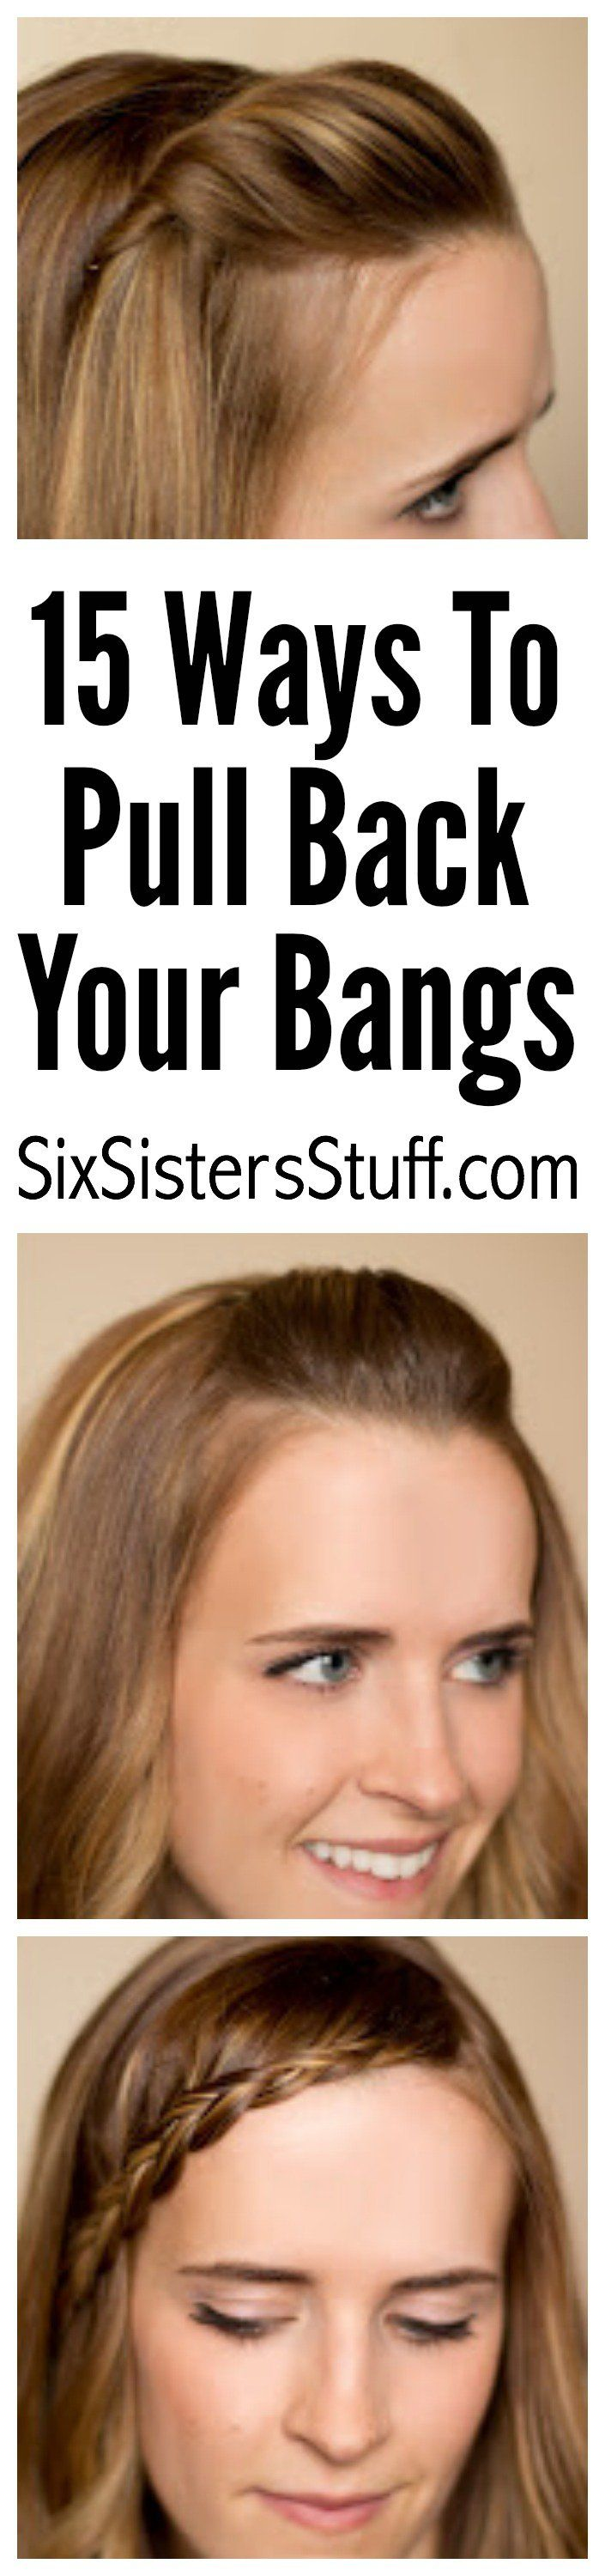 15 Ways To Pull Back Your Bangs How To Style Bangs Hairstyles With Bangs Hair Styles